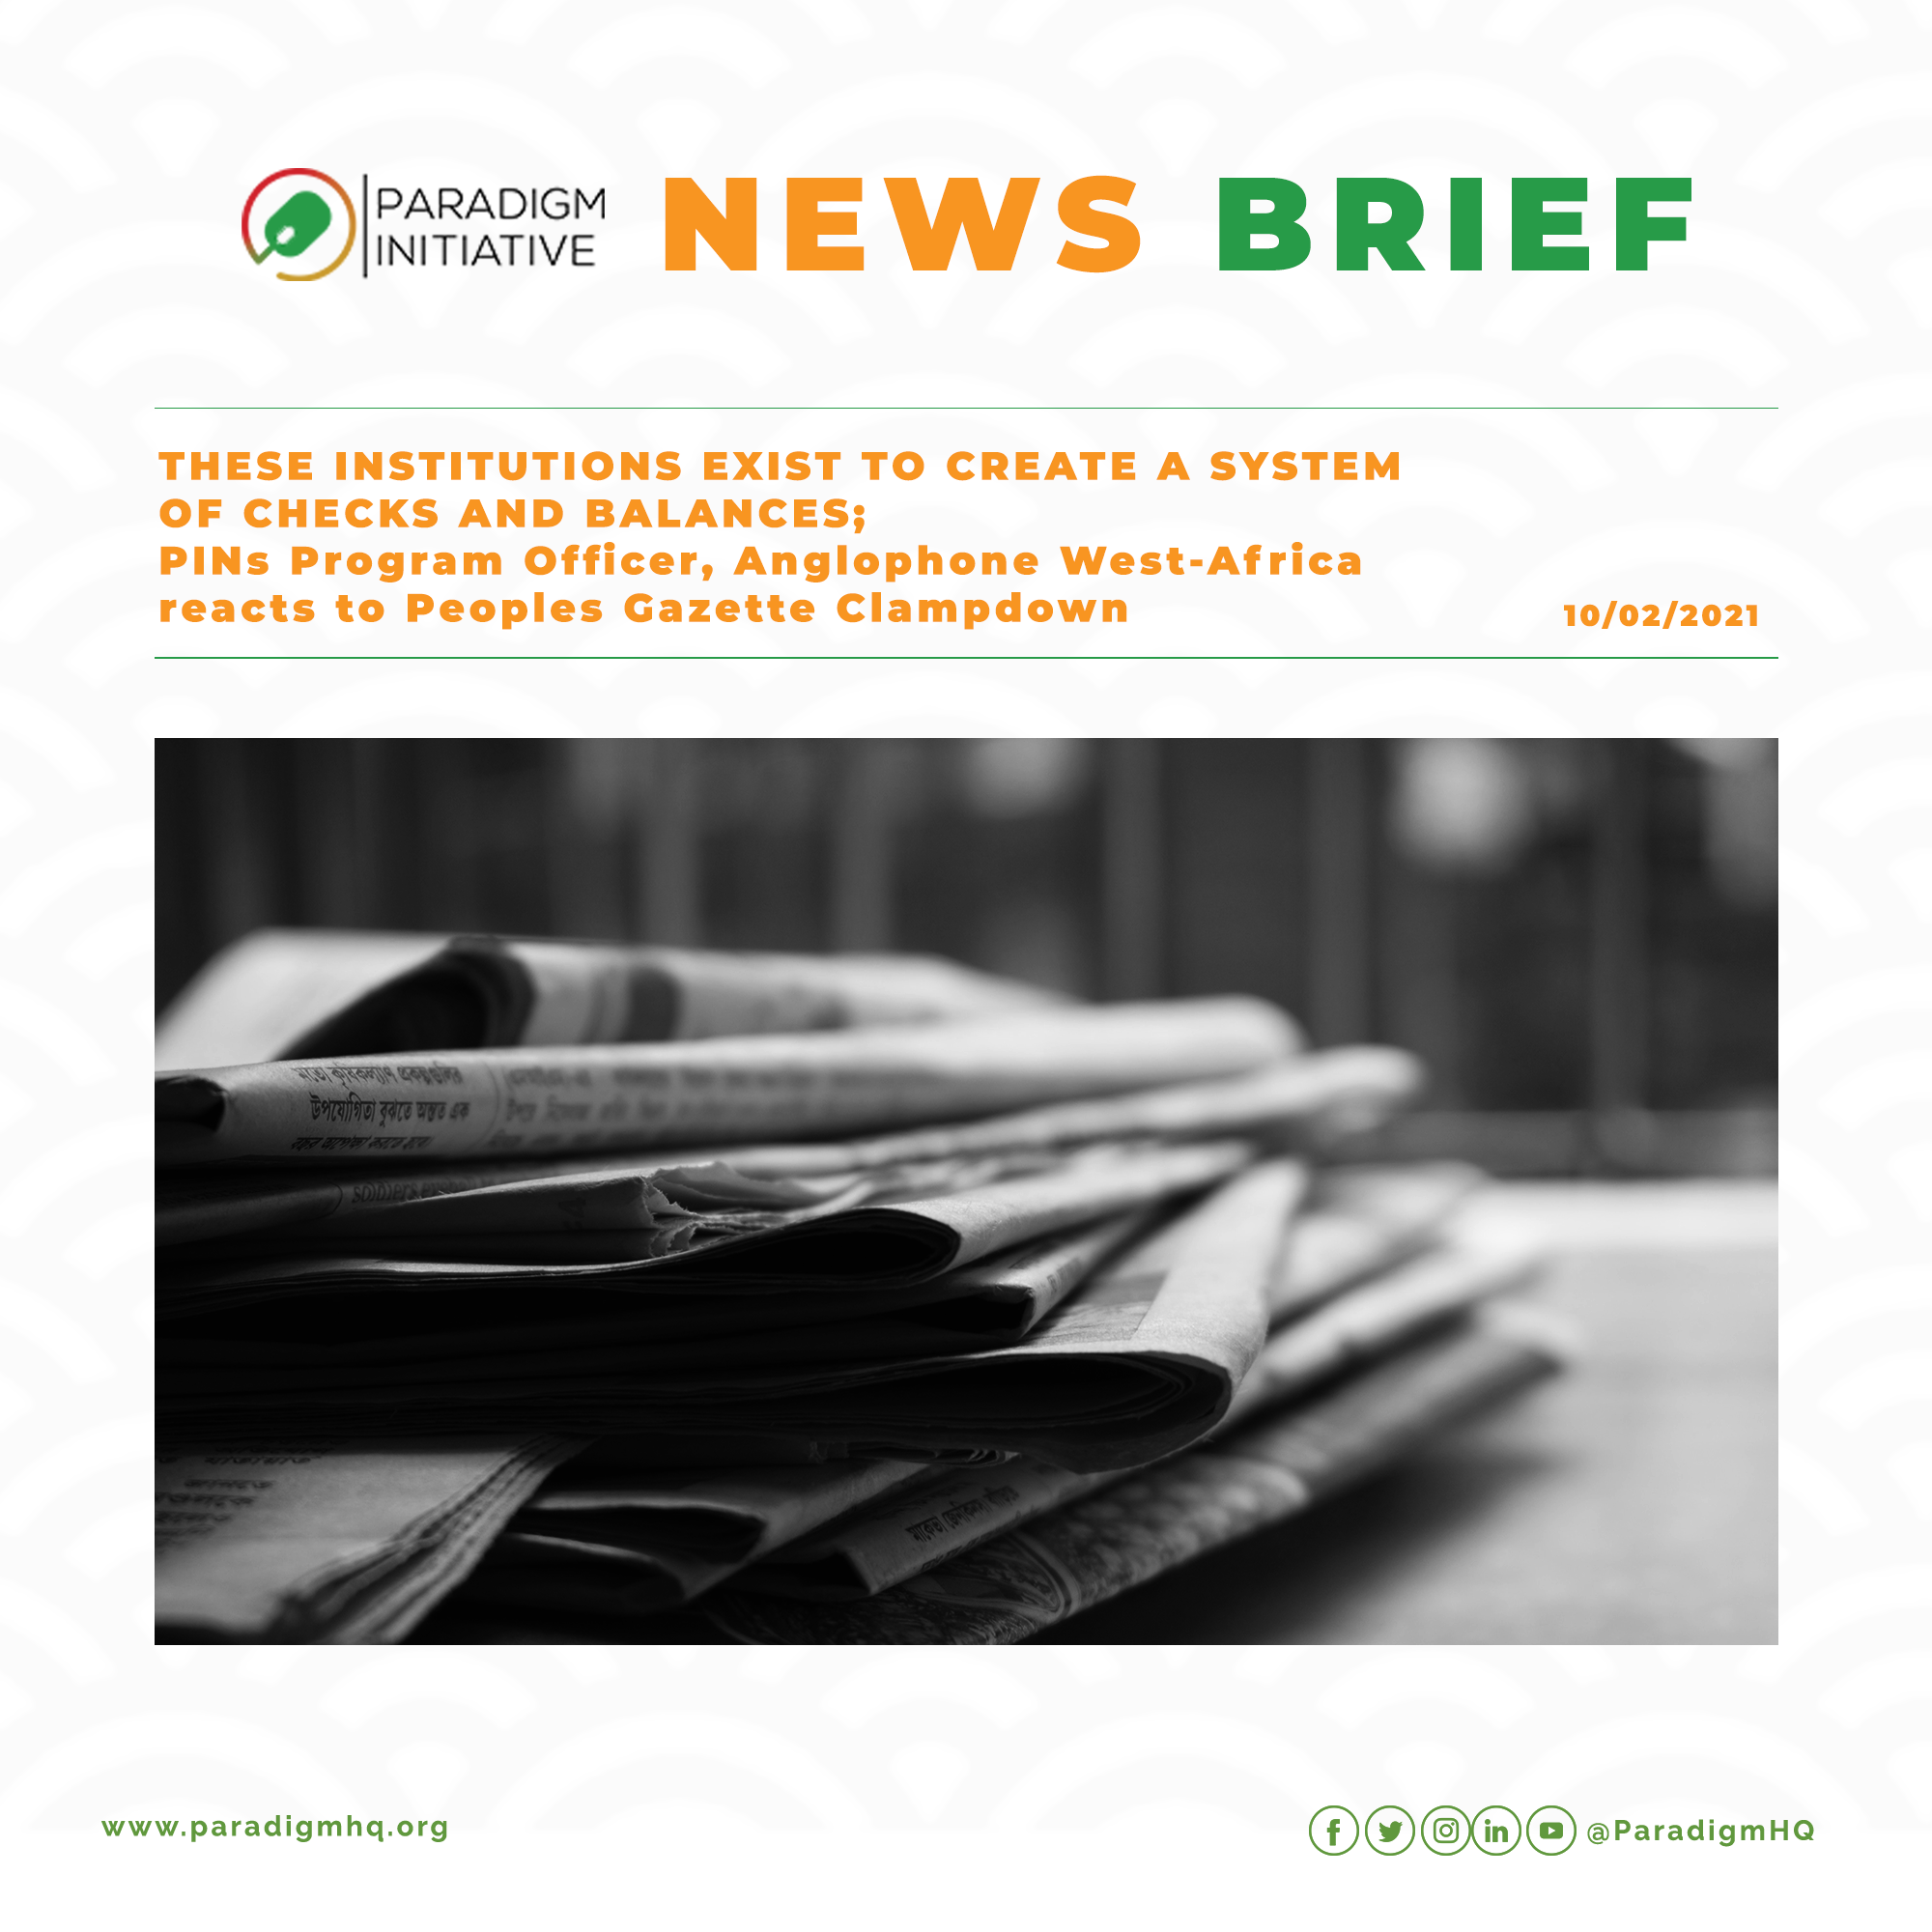 These Institutions exist to create a system of checks and balances, PINs Program Officer, Anglophone West-Africa reacts to Peoples Gazette Clampdown